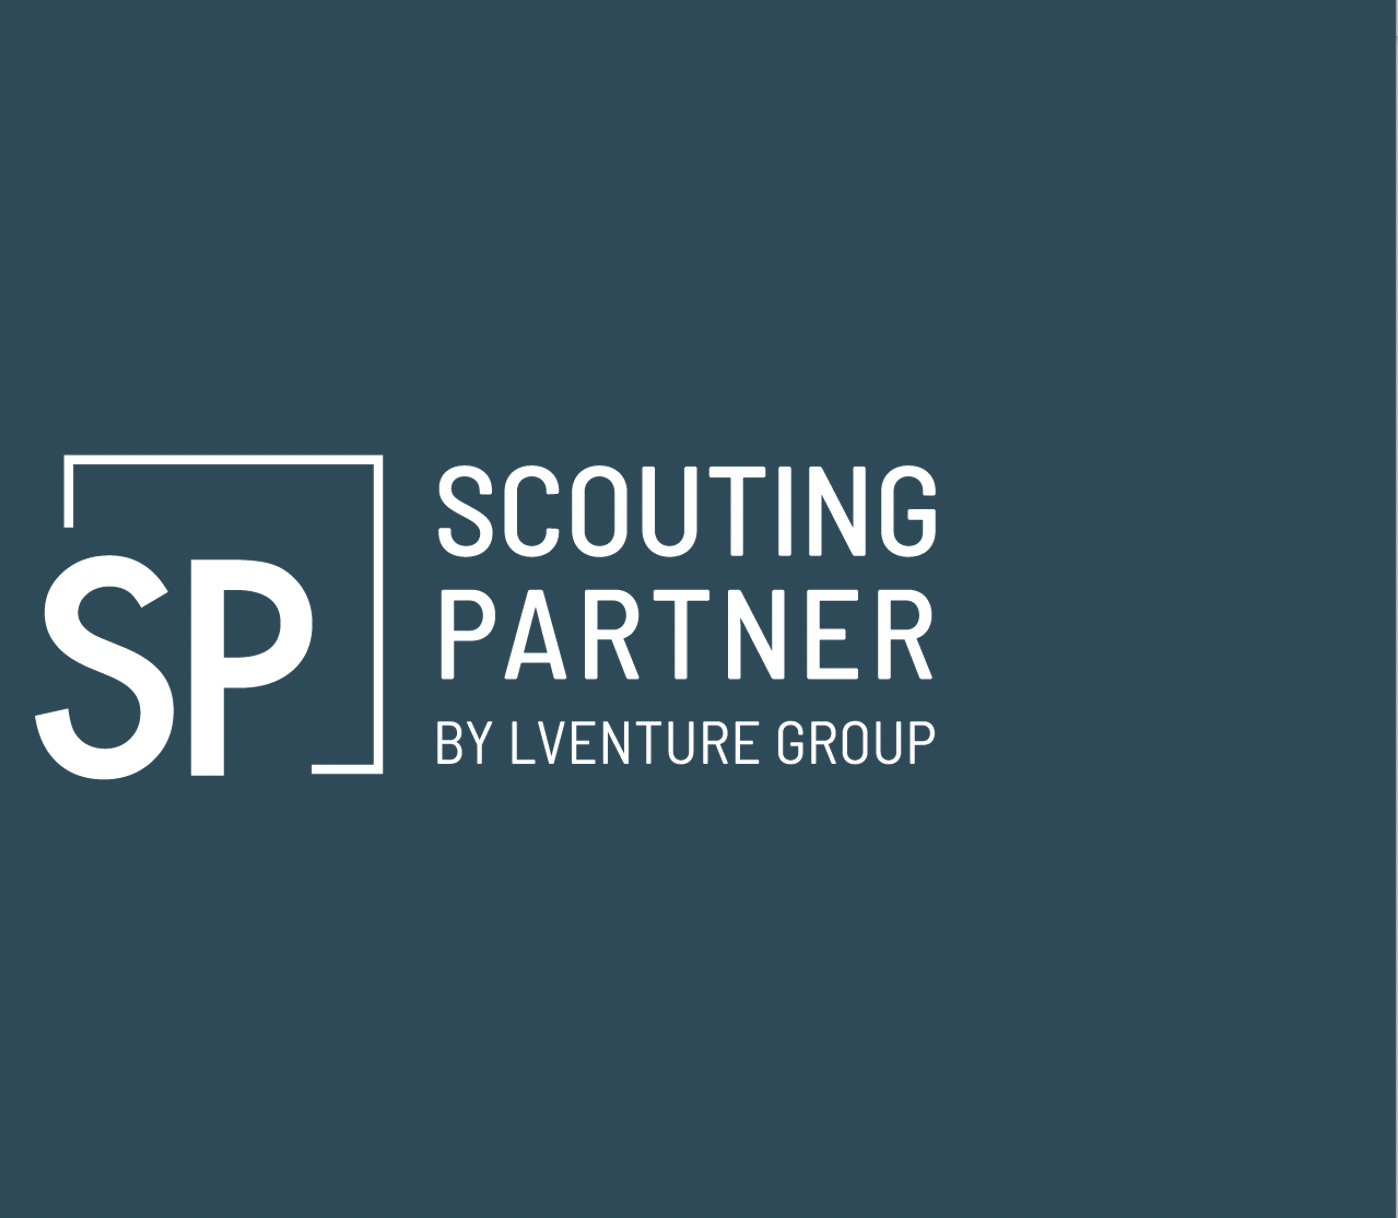 Scouting Partner by LVenture